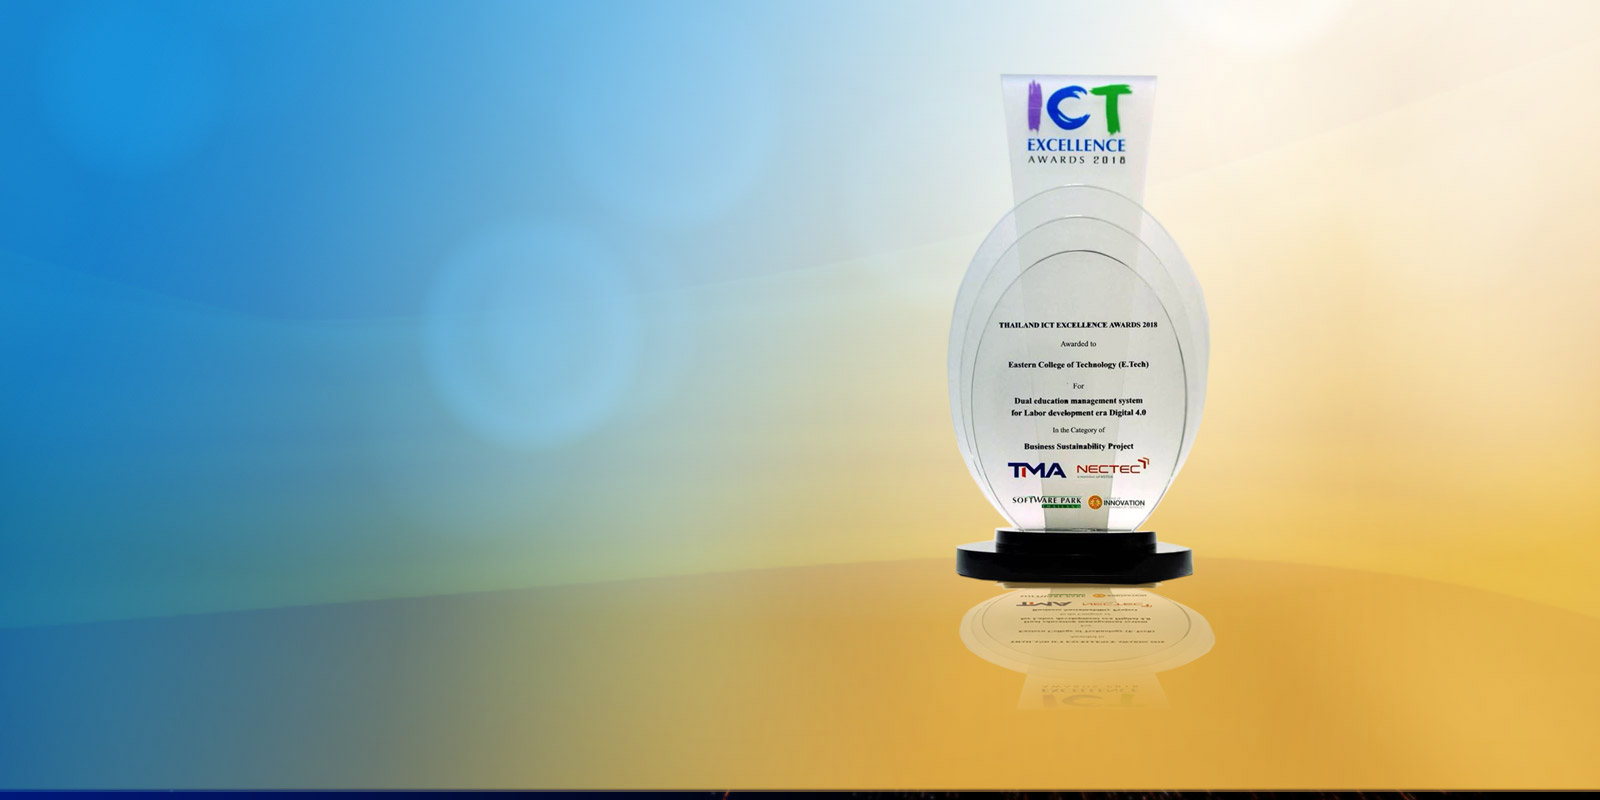 ict excellence awards 2018